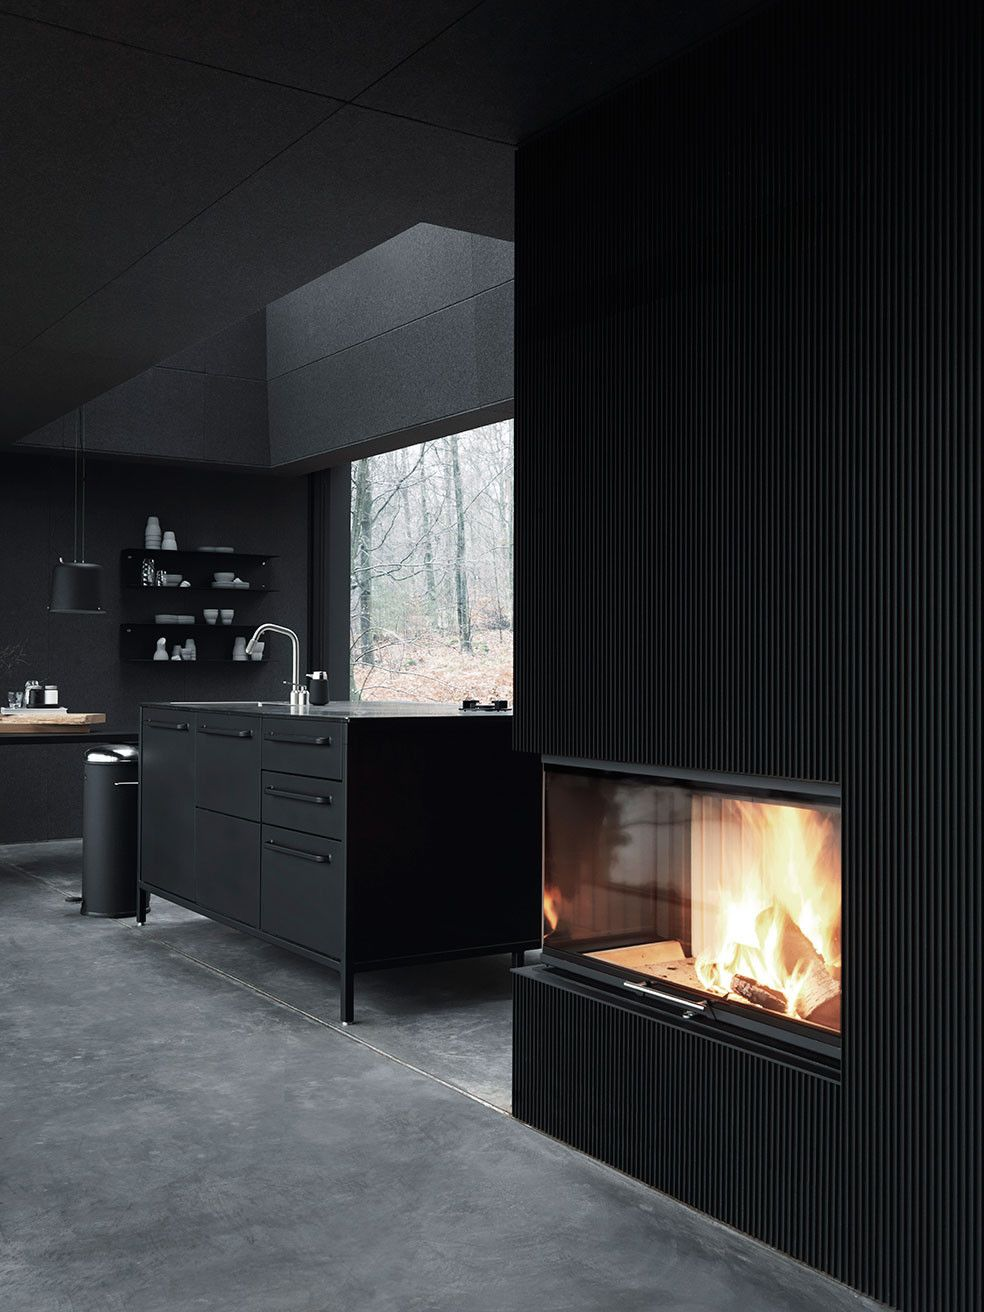 The Vipp Shelter Fireplace